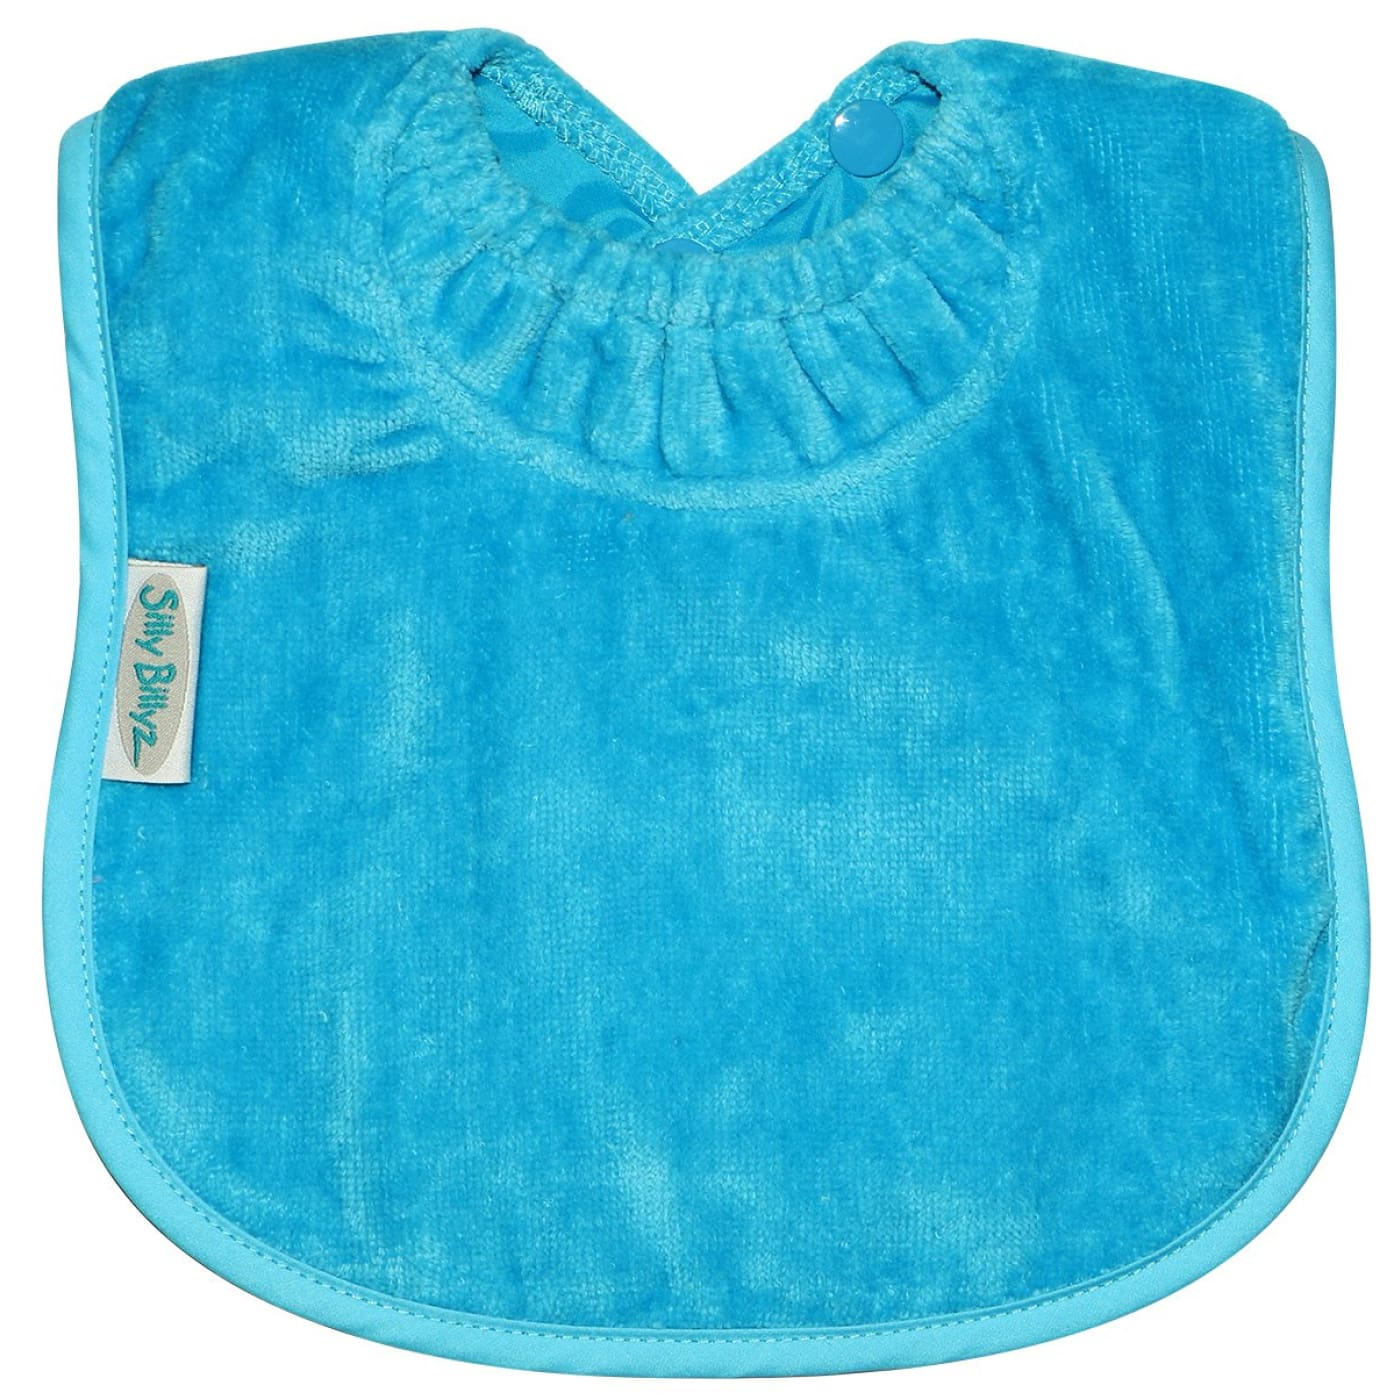 Silly Billyz Towel Plain Large Bib - Aqua - NURSING & FEEDING - BIBS/BURP CLOTHS